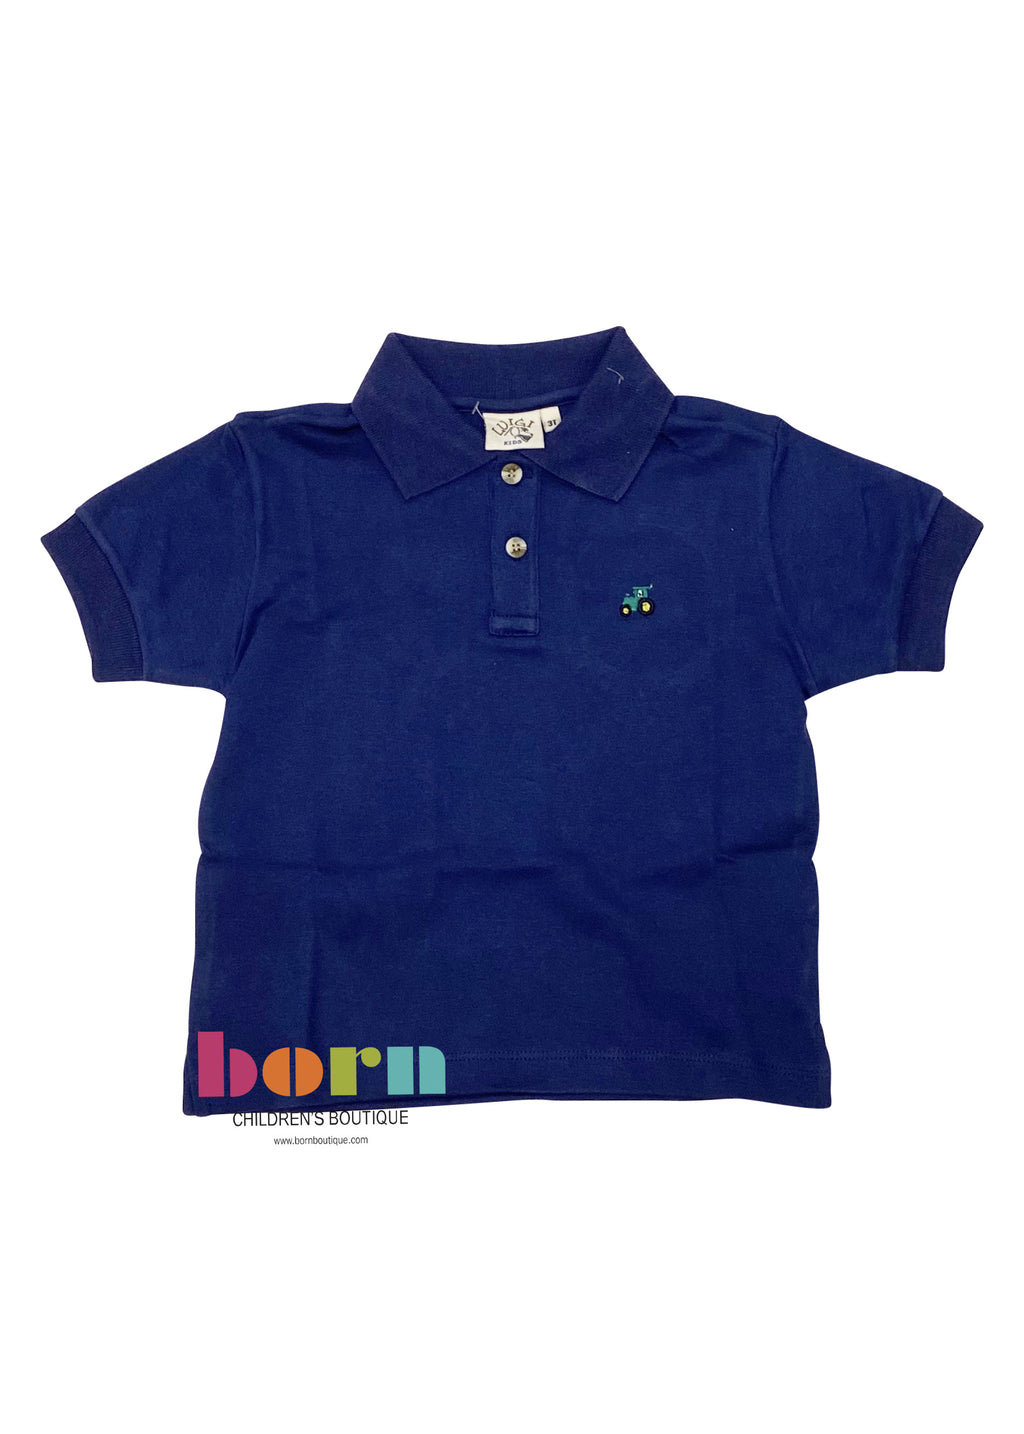 Short Sleeve Polo Dark Royal with Tractor - Born Childrens Boutique